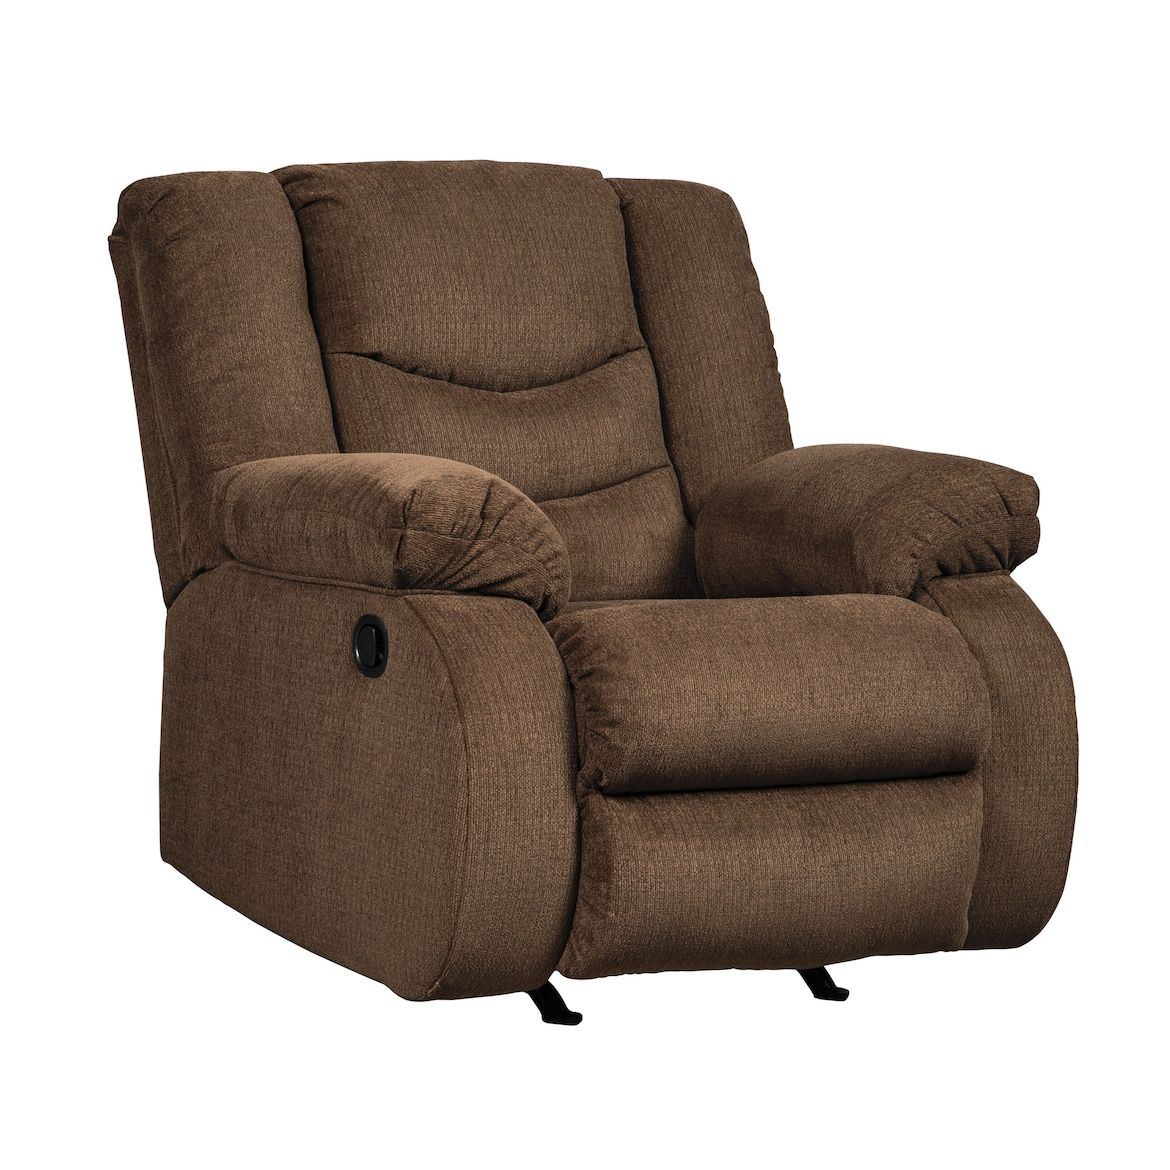 American Furniture Liquidation Brooklyn Park Mn: Coppola Recliner - Chocolate